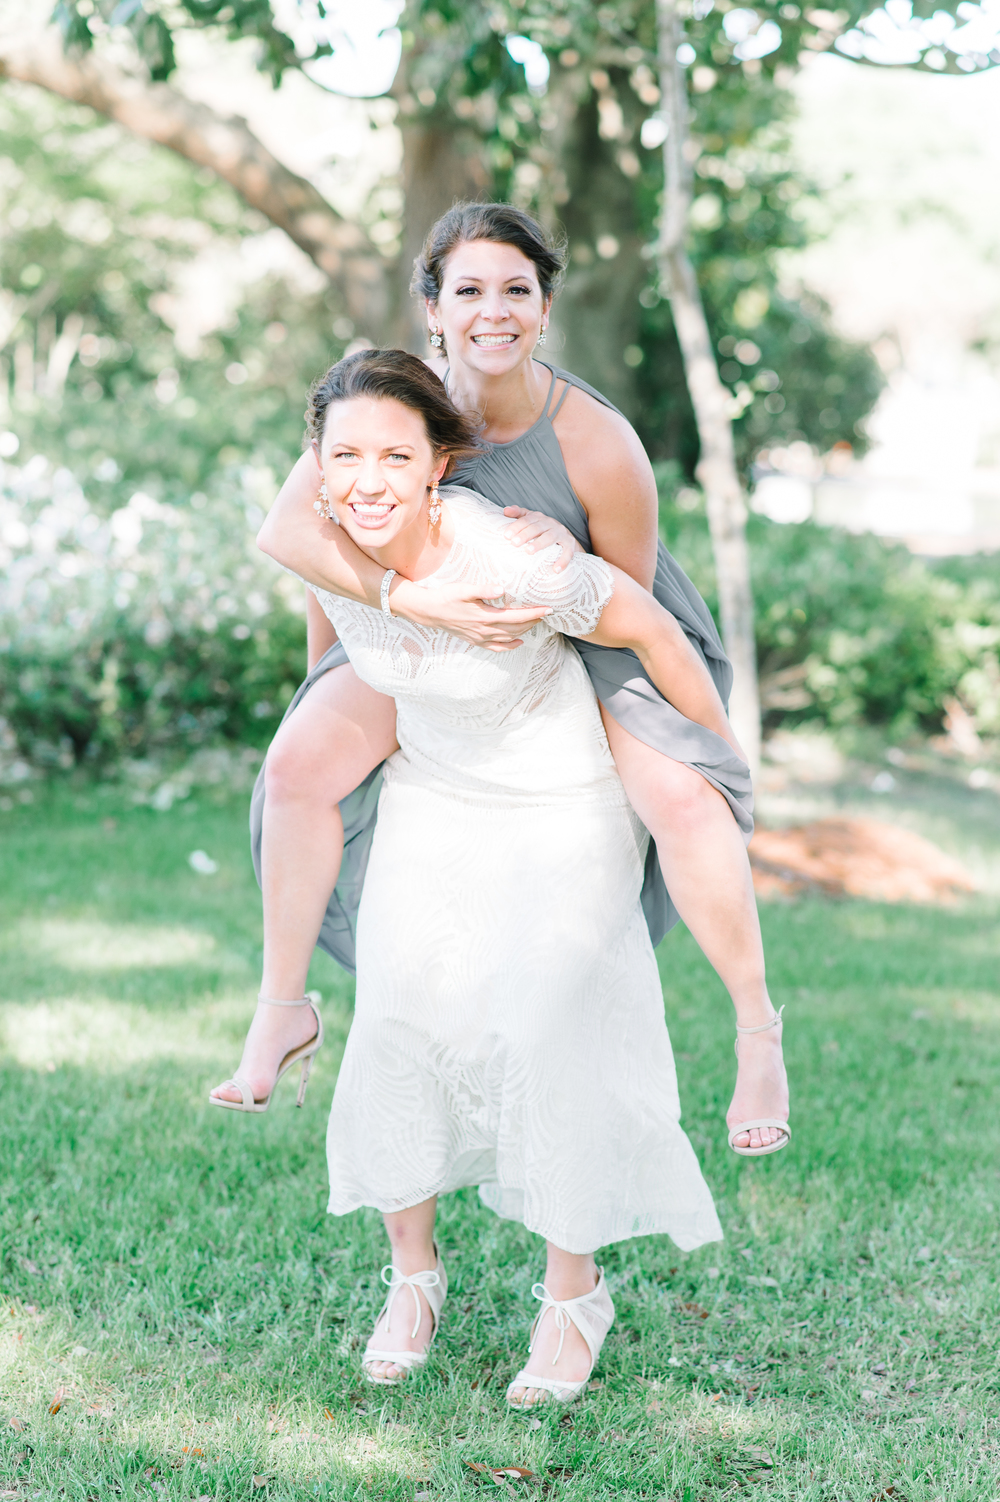 Mary+Zach-LowndesGroveWeddingbyAaronandJillianPhotography-400.jpg